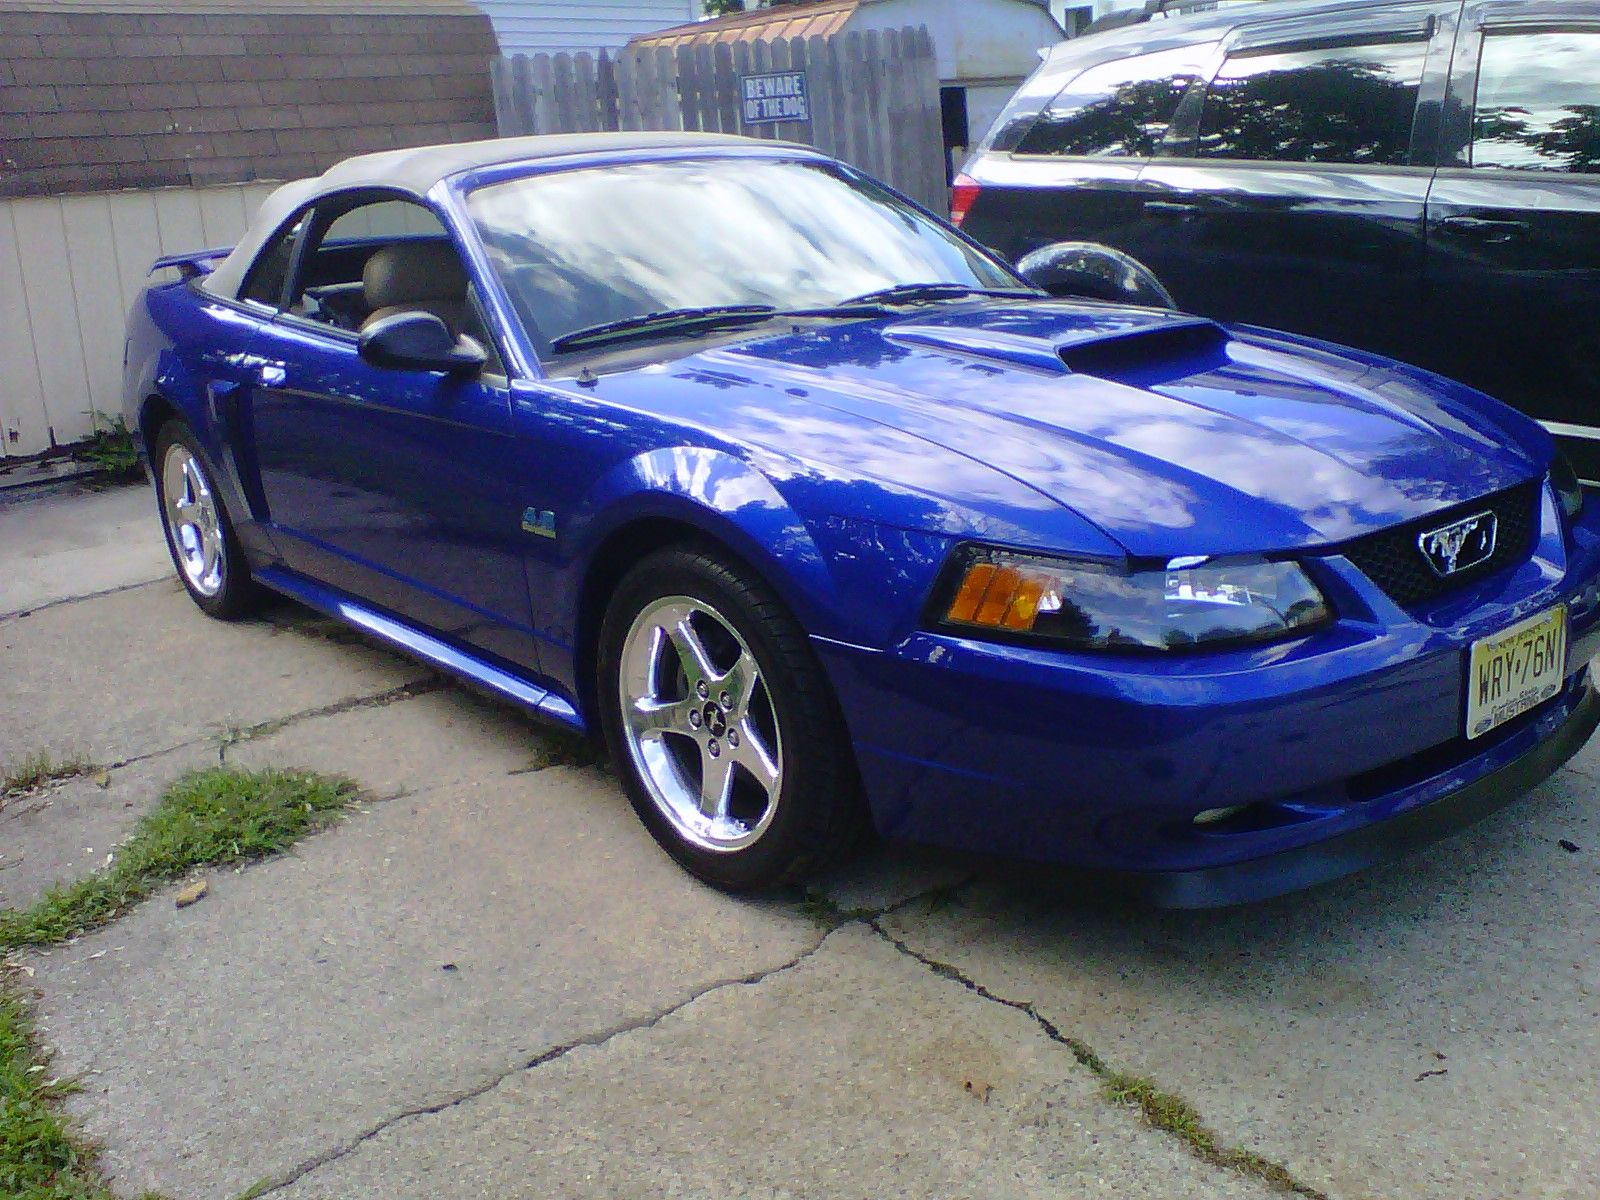 for sale in nj 2003 supercharged mustang gt convertible used mustangs for sale in nj ny pa. Black Bedroom Furniture Sets. Home Design Ideas